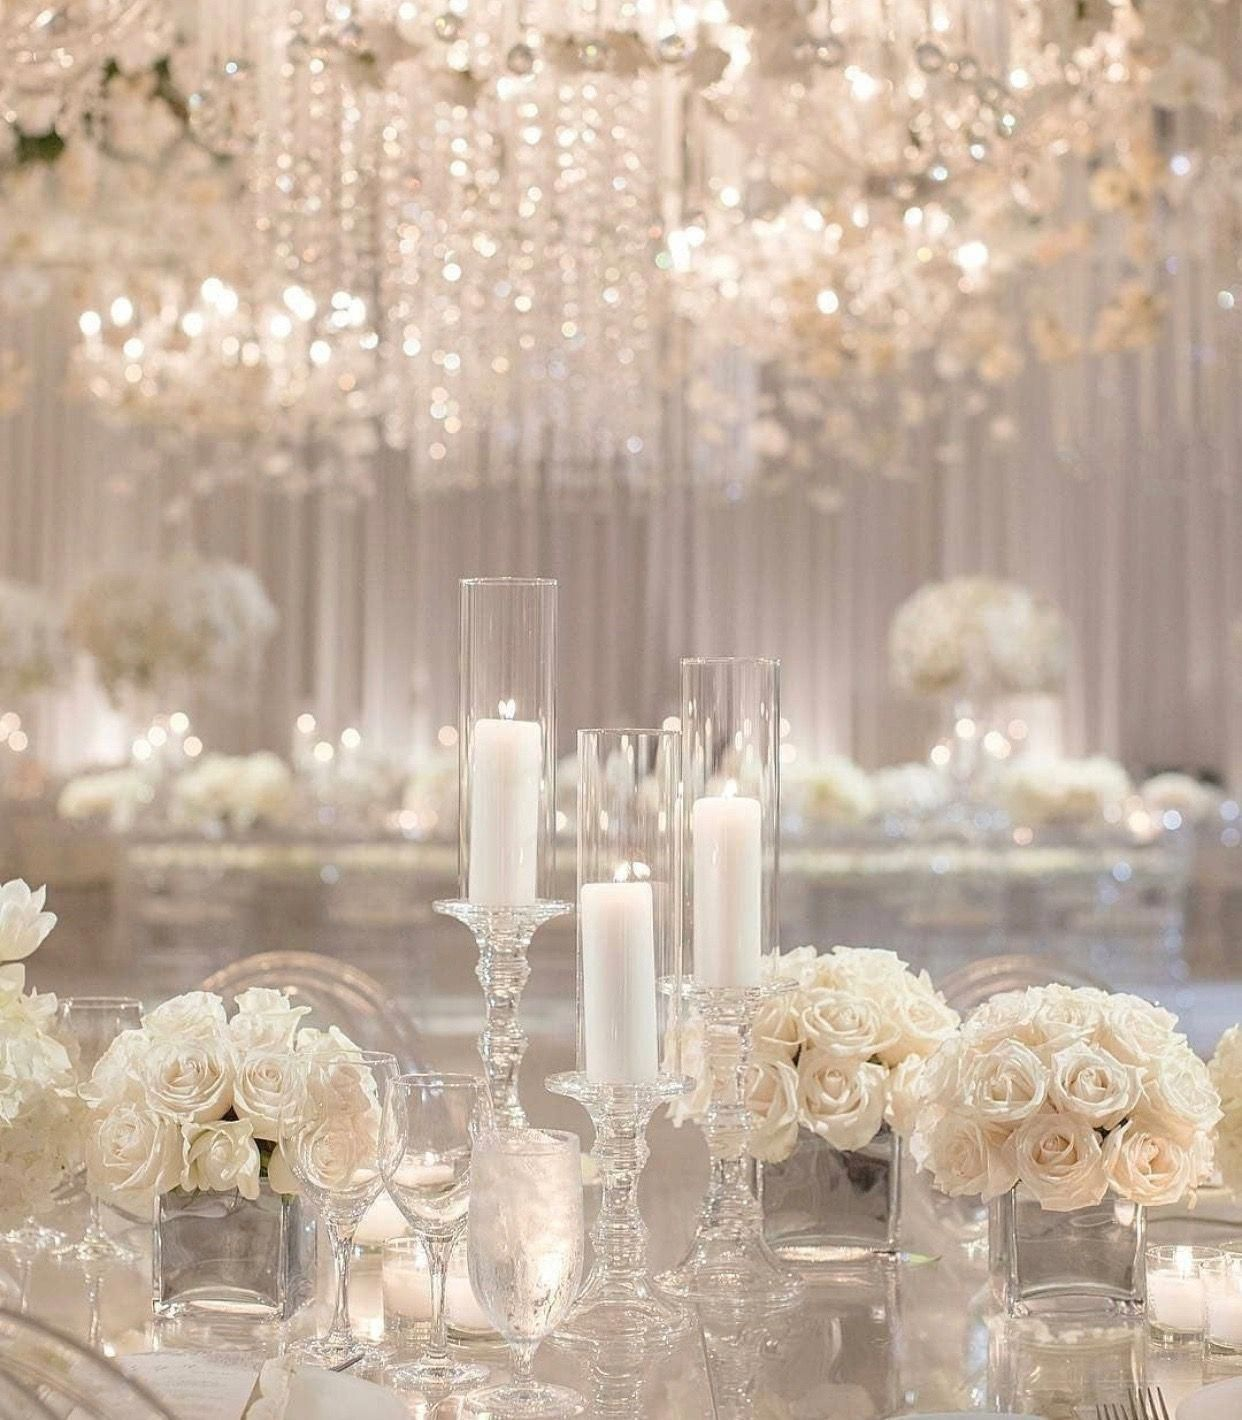 26 Practical Silver Wedding Décor Ideas That Wow